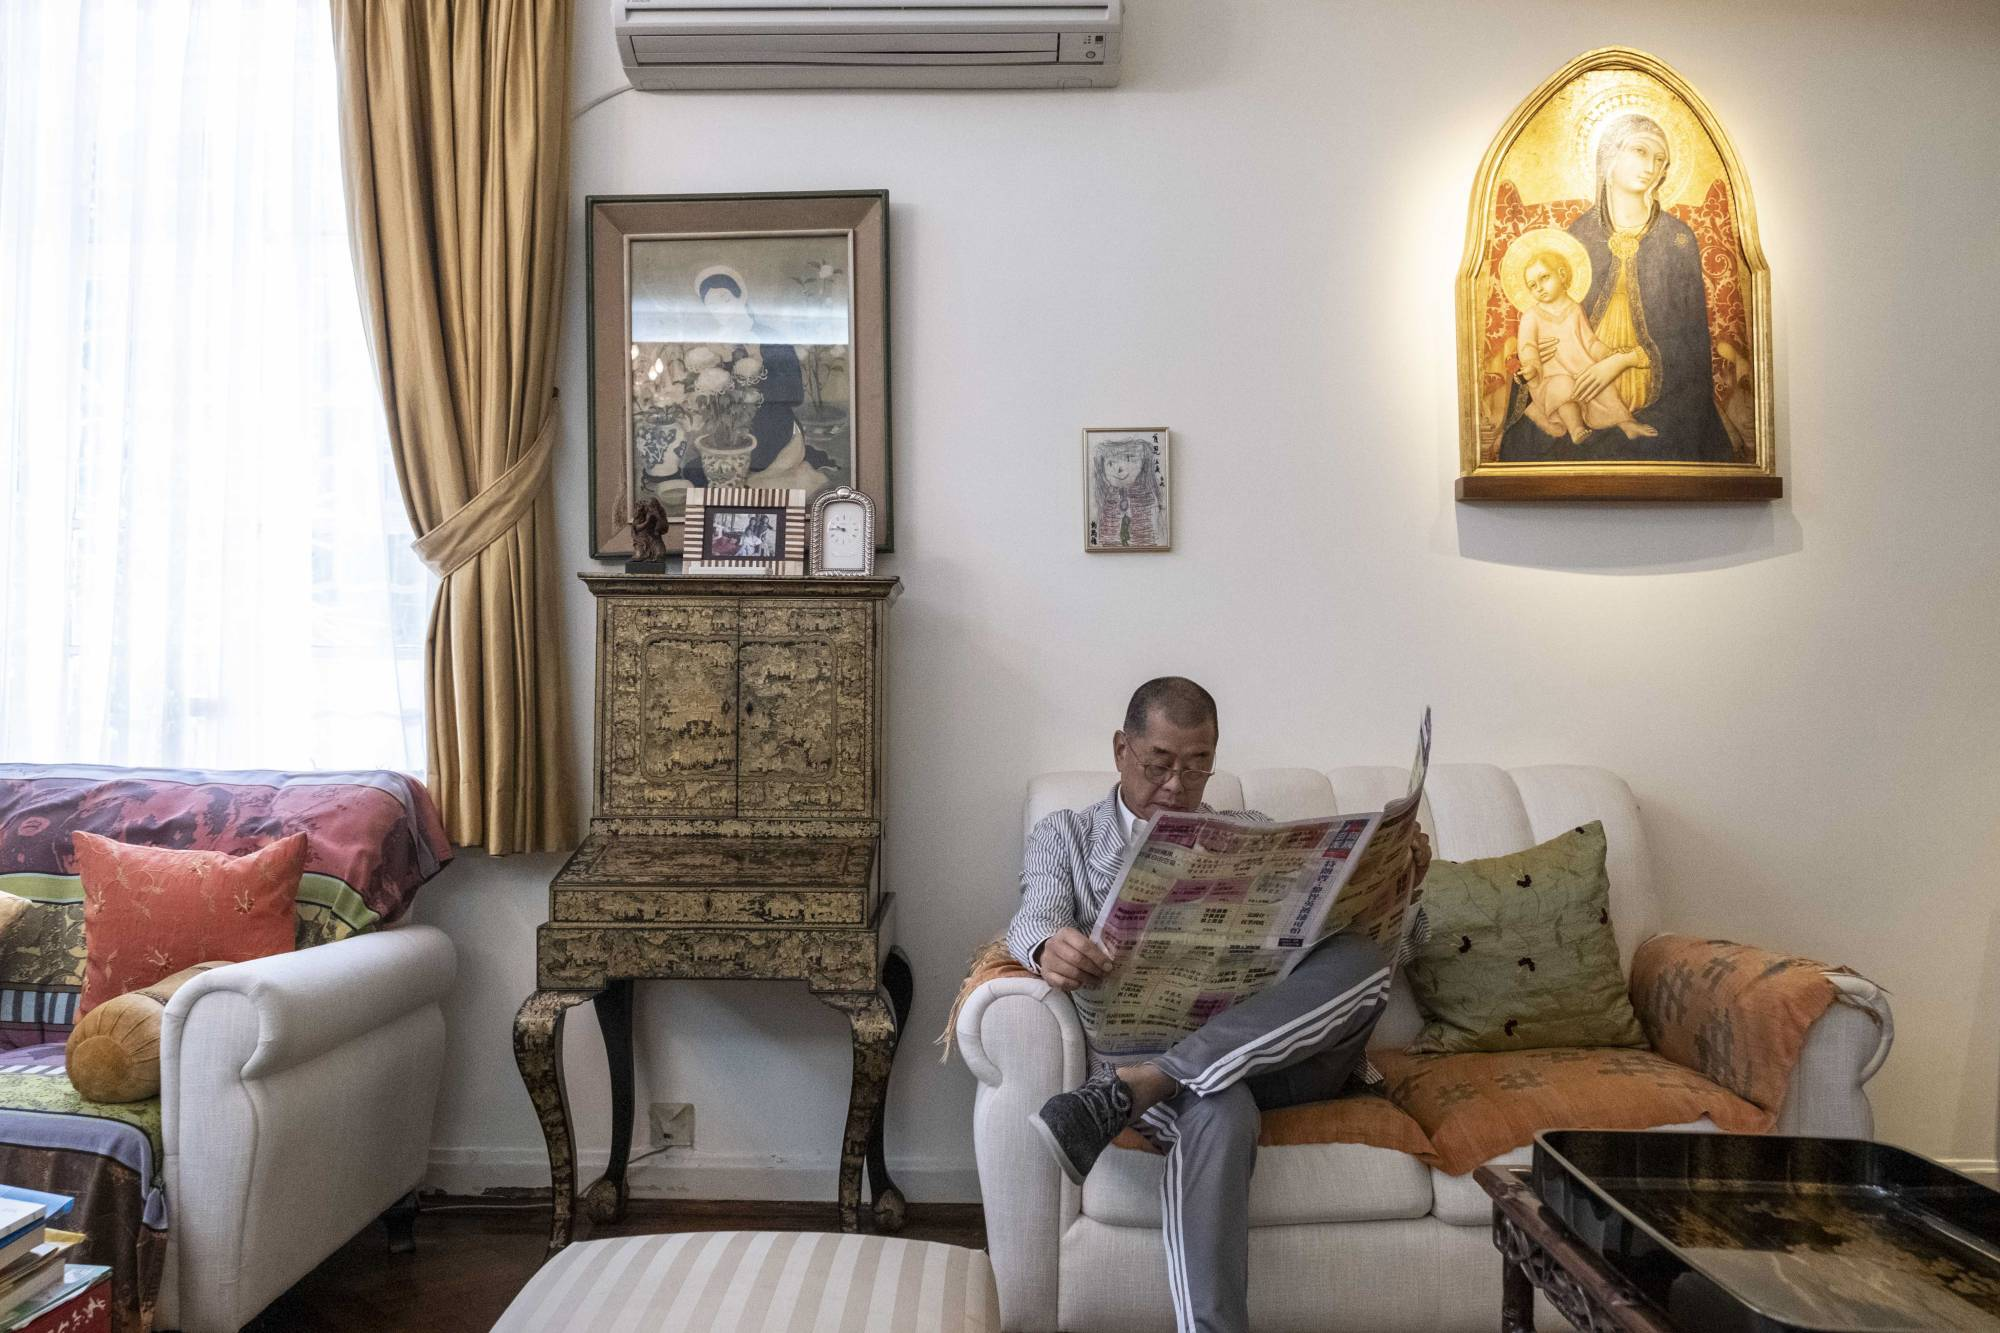 Jimmy Lai sits at his home in Hong Kong a few days after he was arrested by police under the city's new national security law. | LAM YIK FEI/THE NEW YORK TIMES